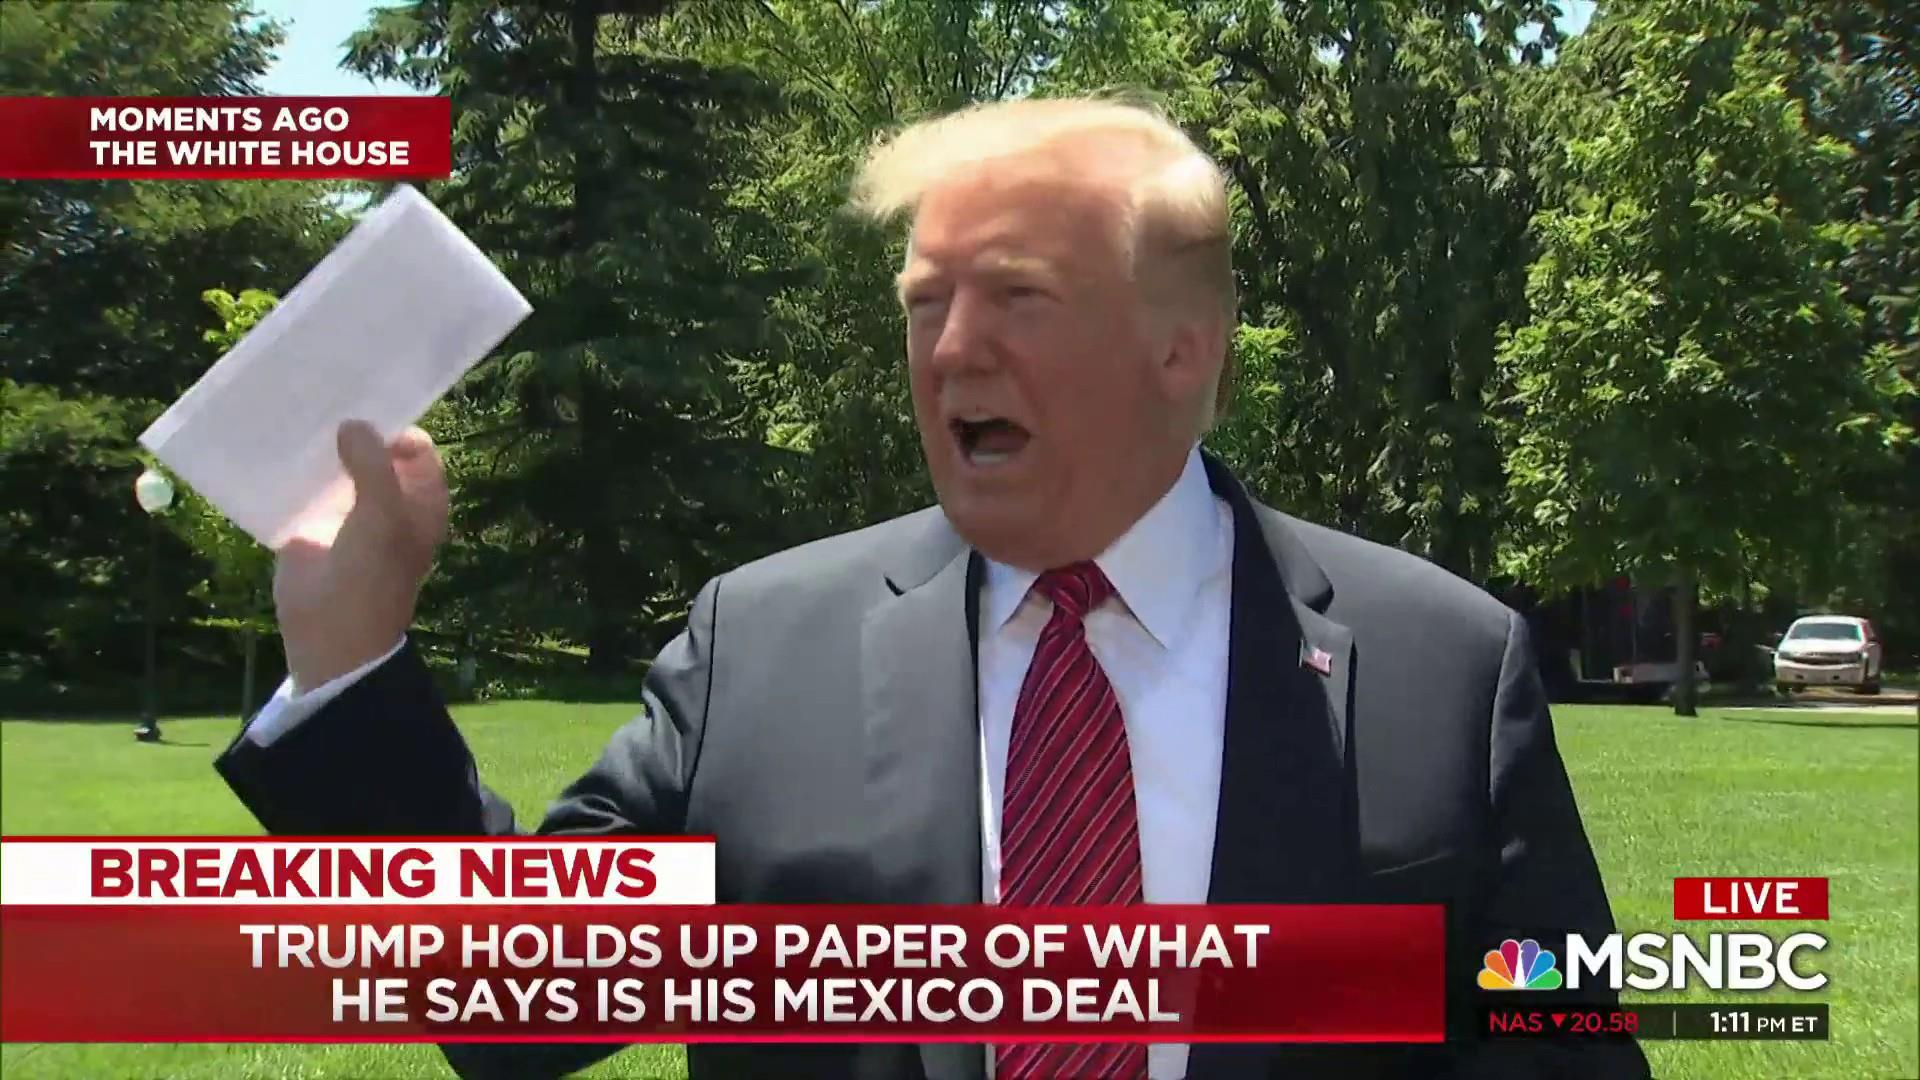 Trump waves around paper of what he says is Mexico deal